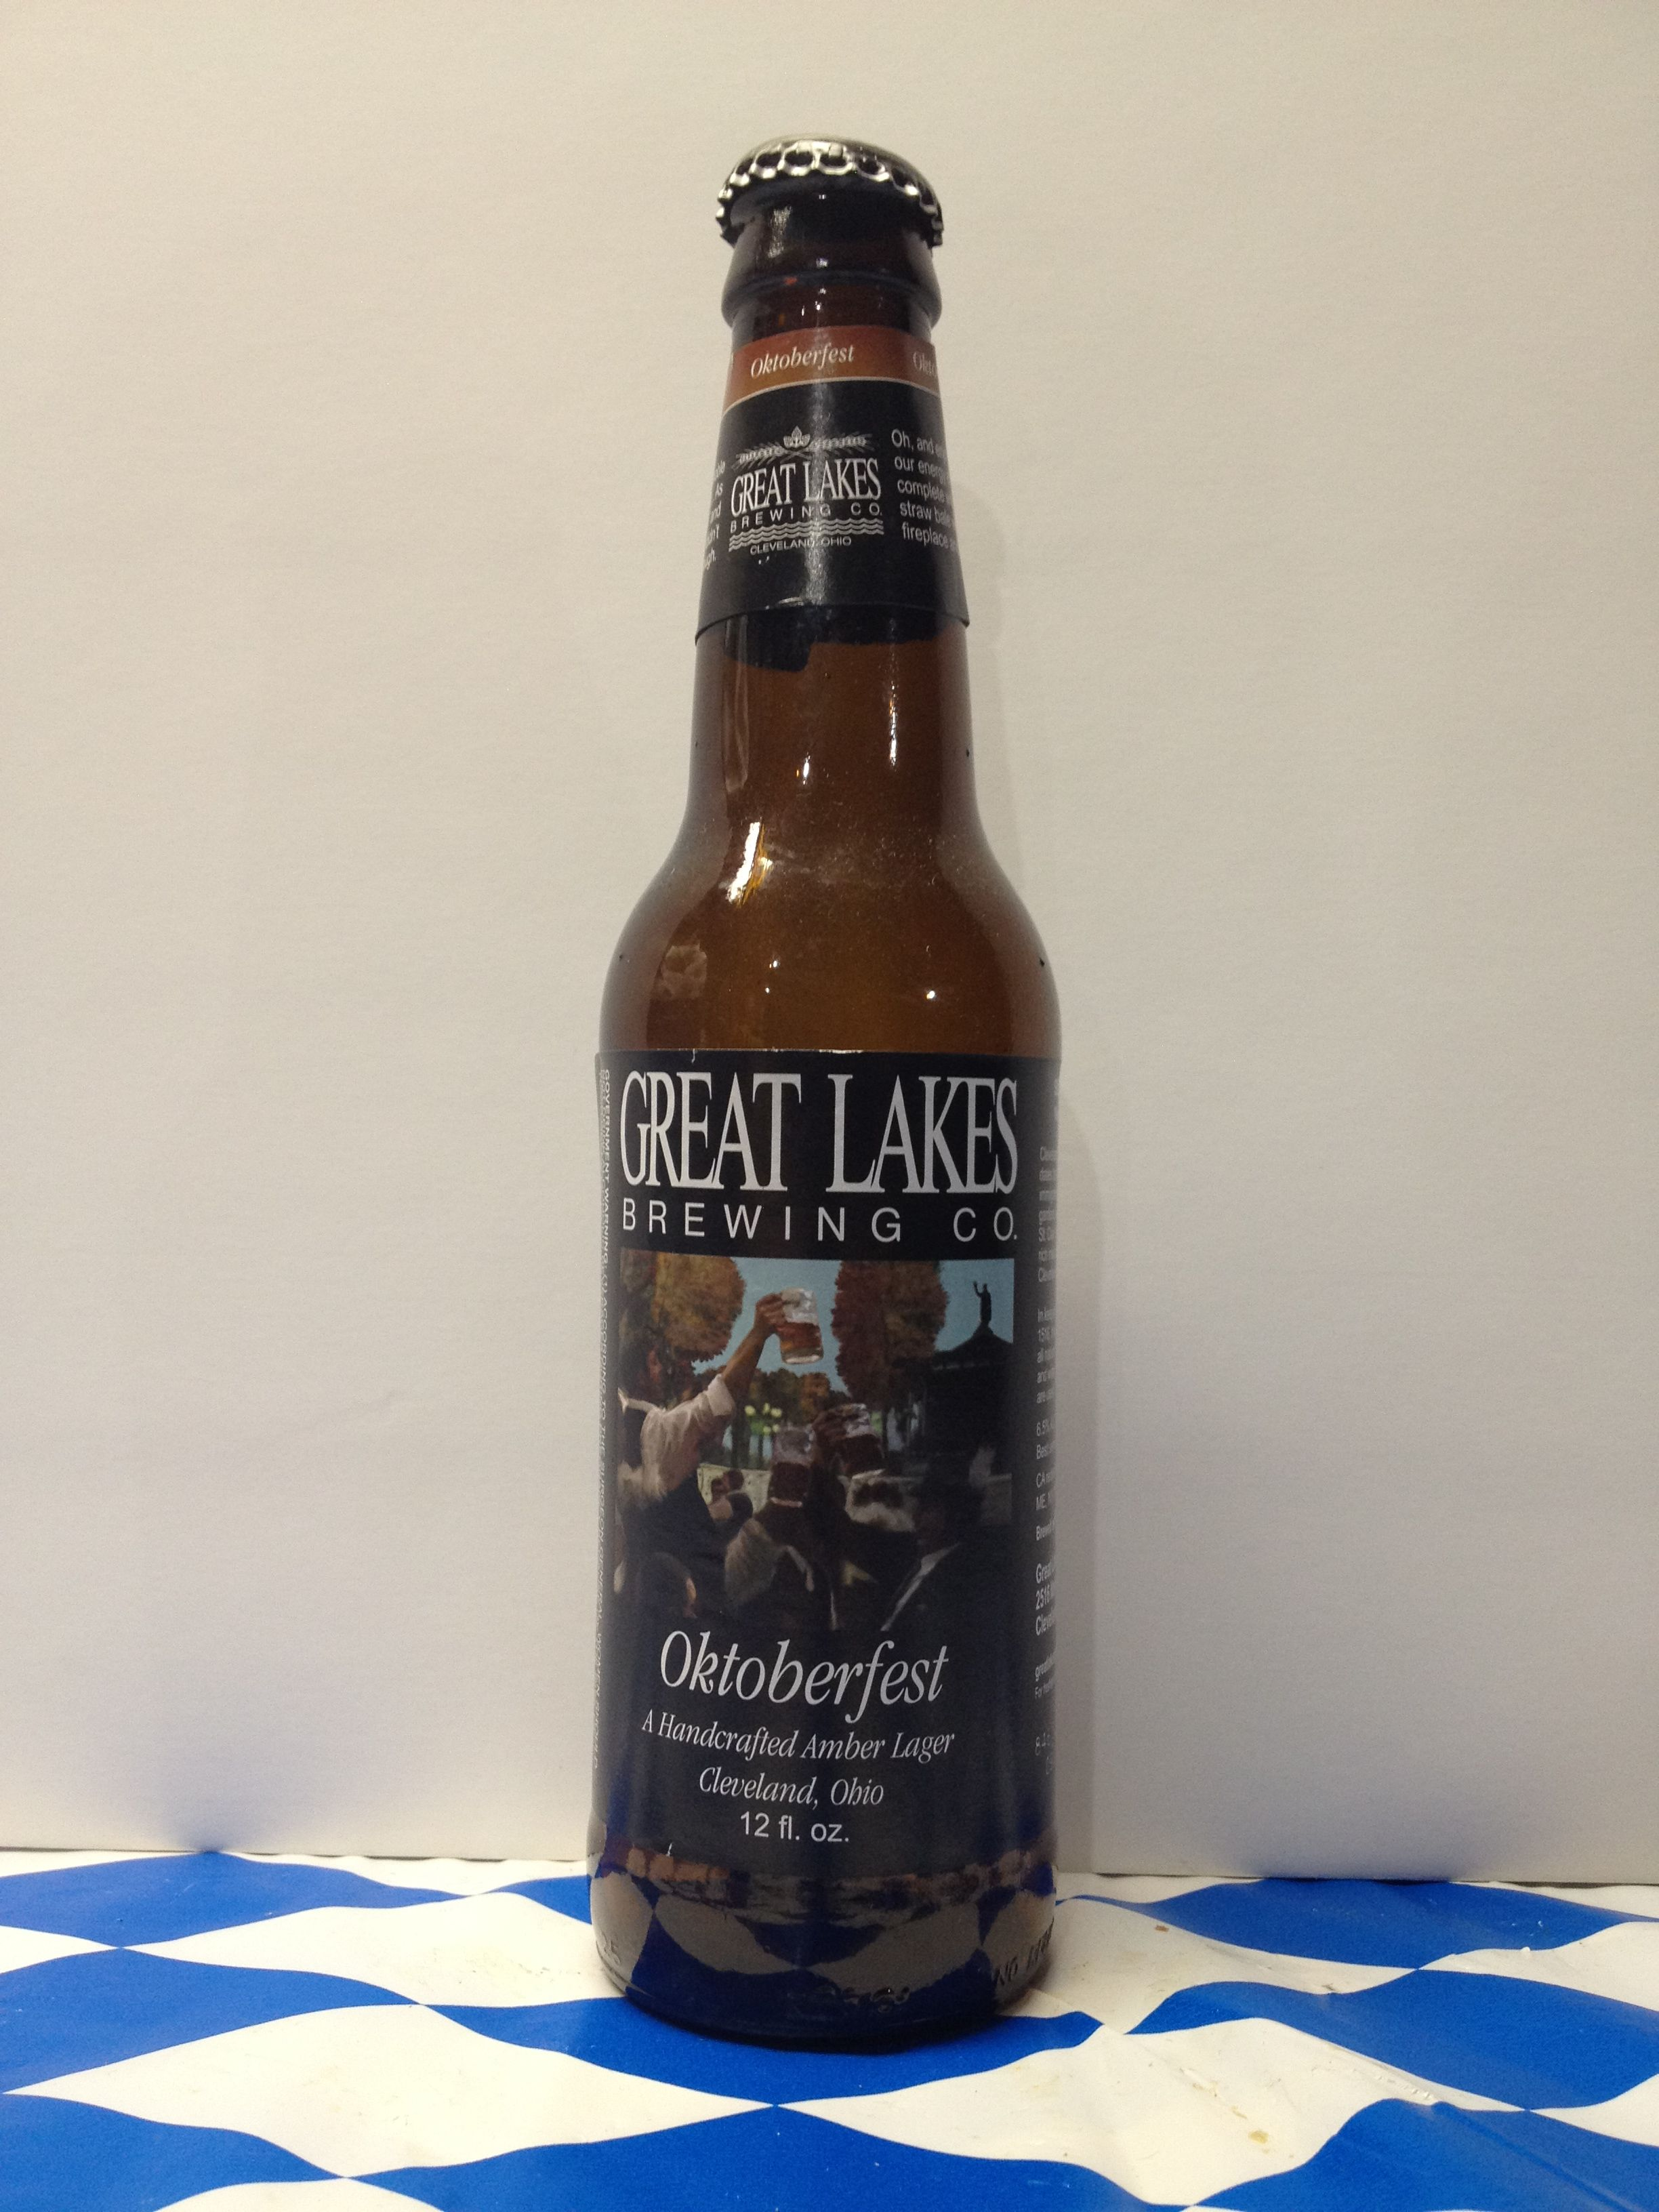 Beer Review of Great Lakes Oktoberfest